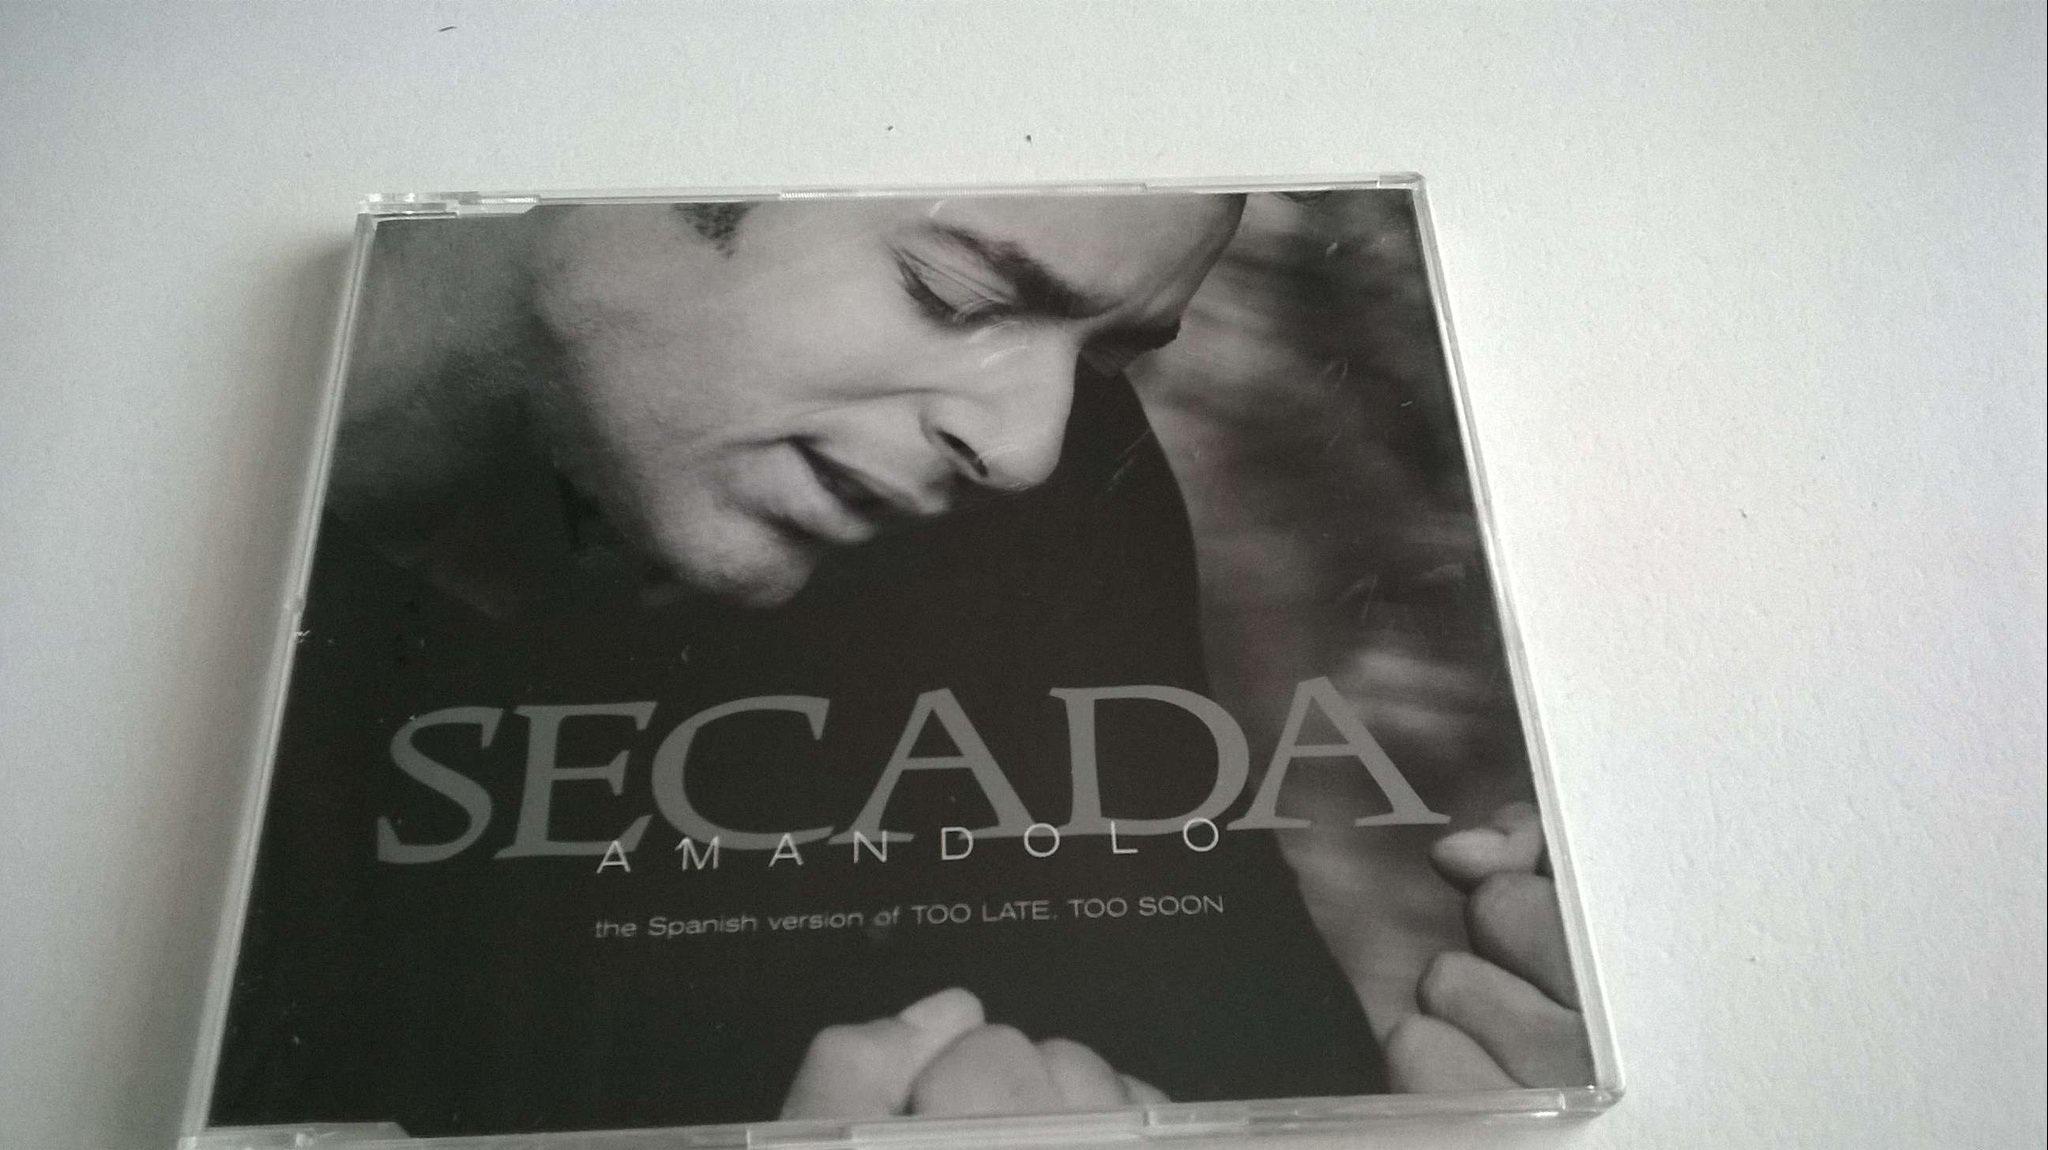 Jon Secada - Amandolo The Spanish version of Too Late, Too